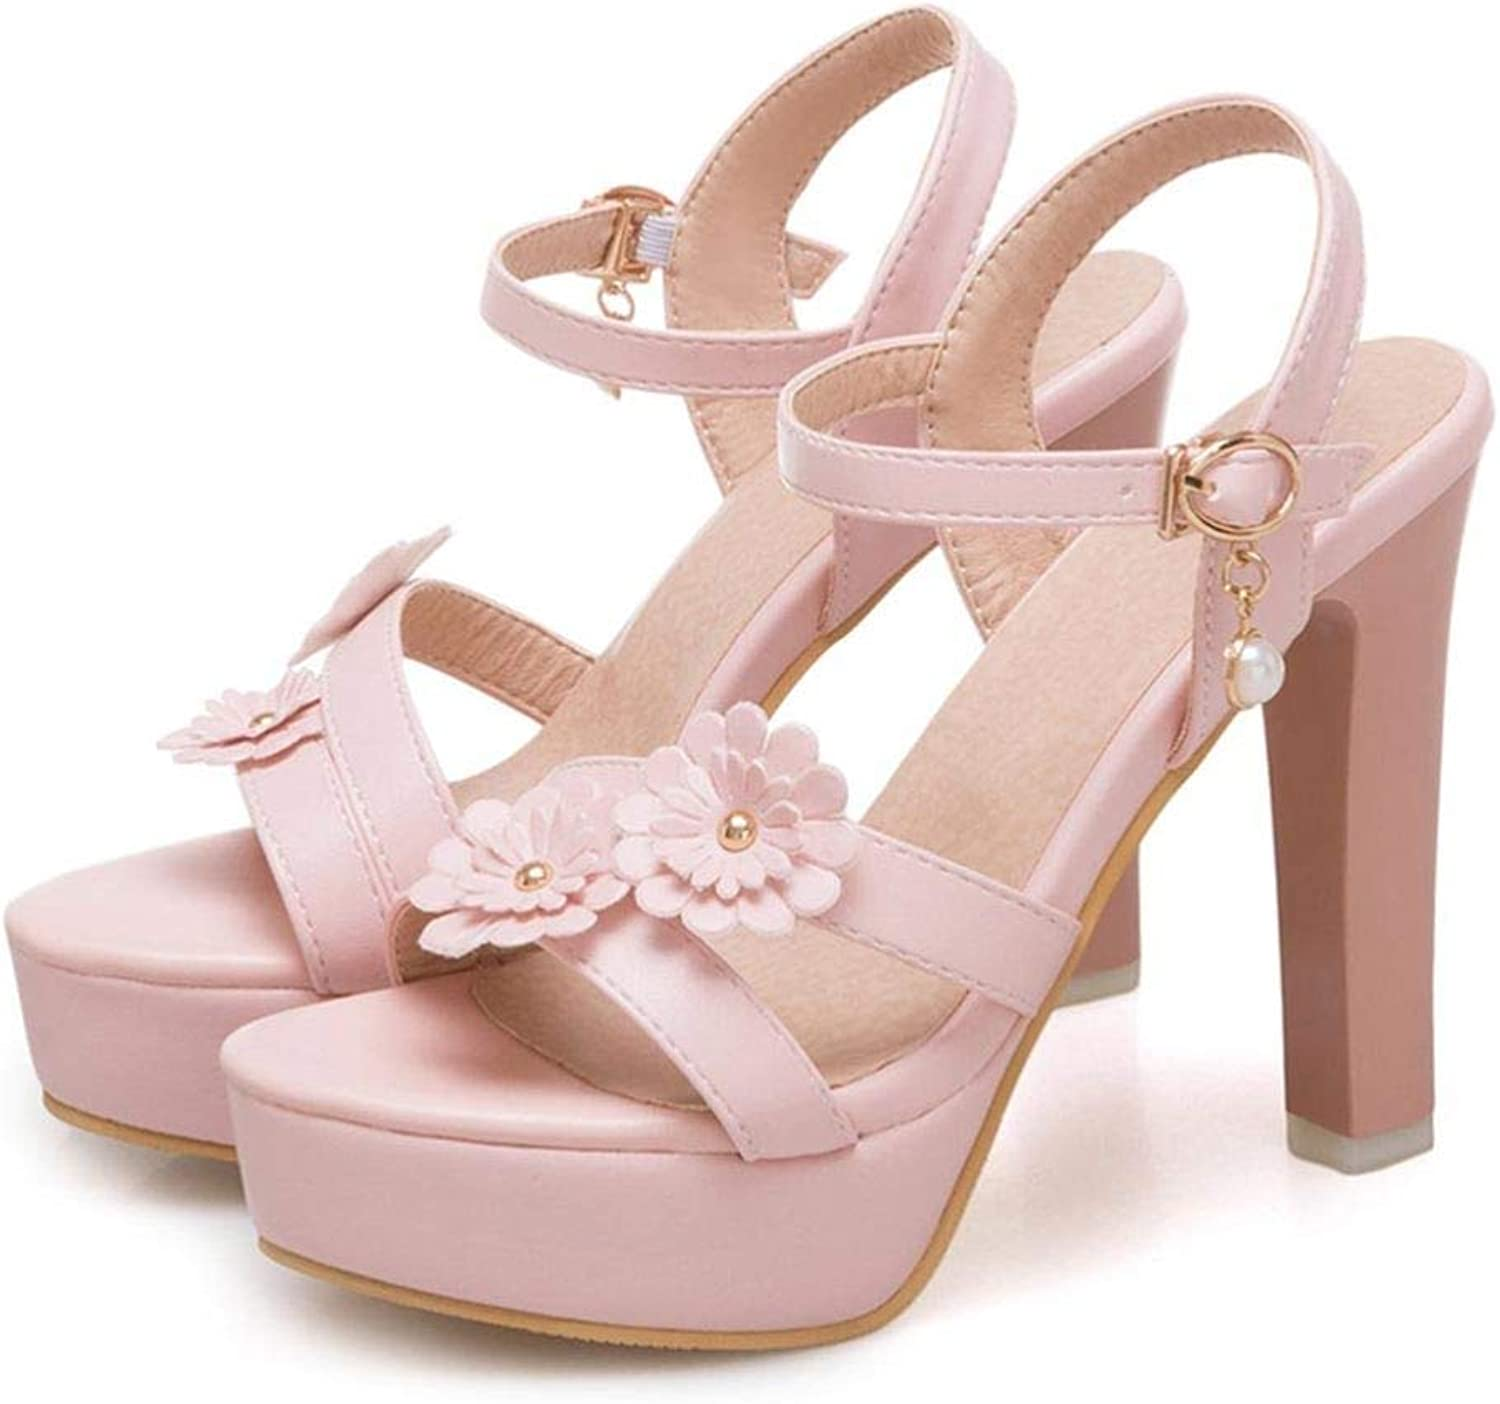 LVYING Womens Fashion Thick High Heels Sexy Sandals Summer Sweet Flower Party Dress shoes